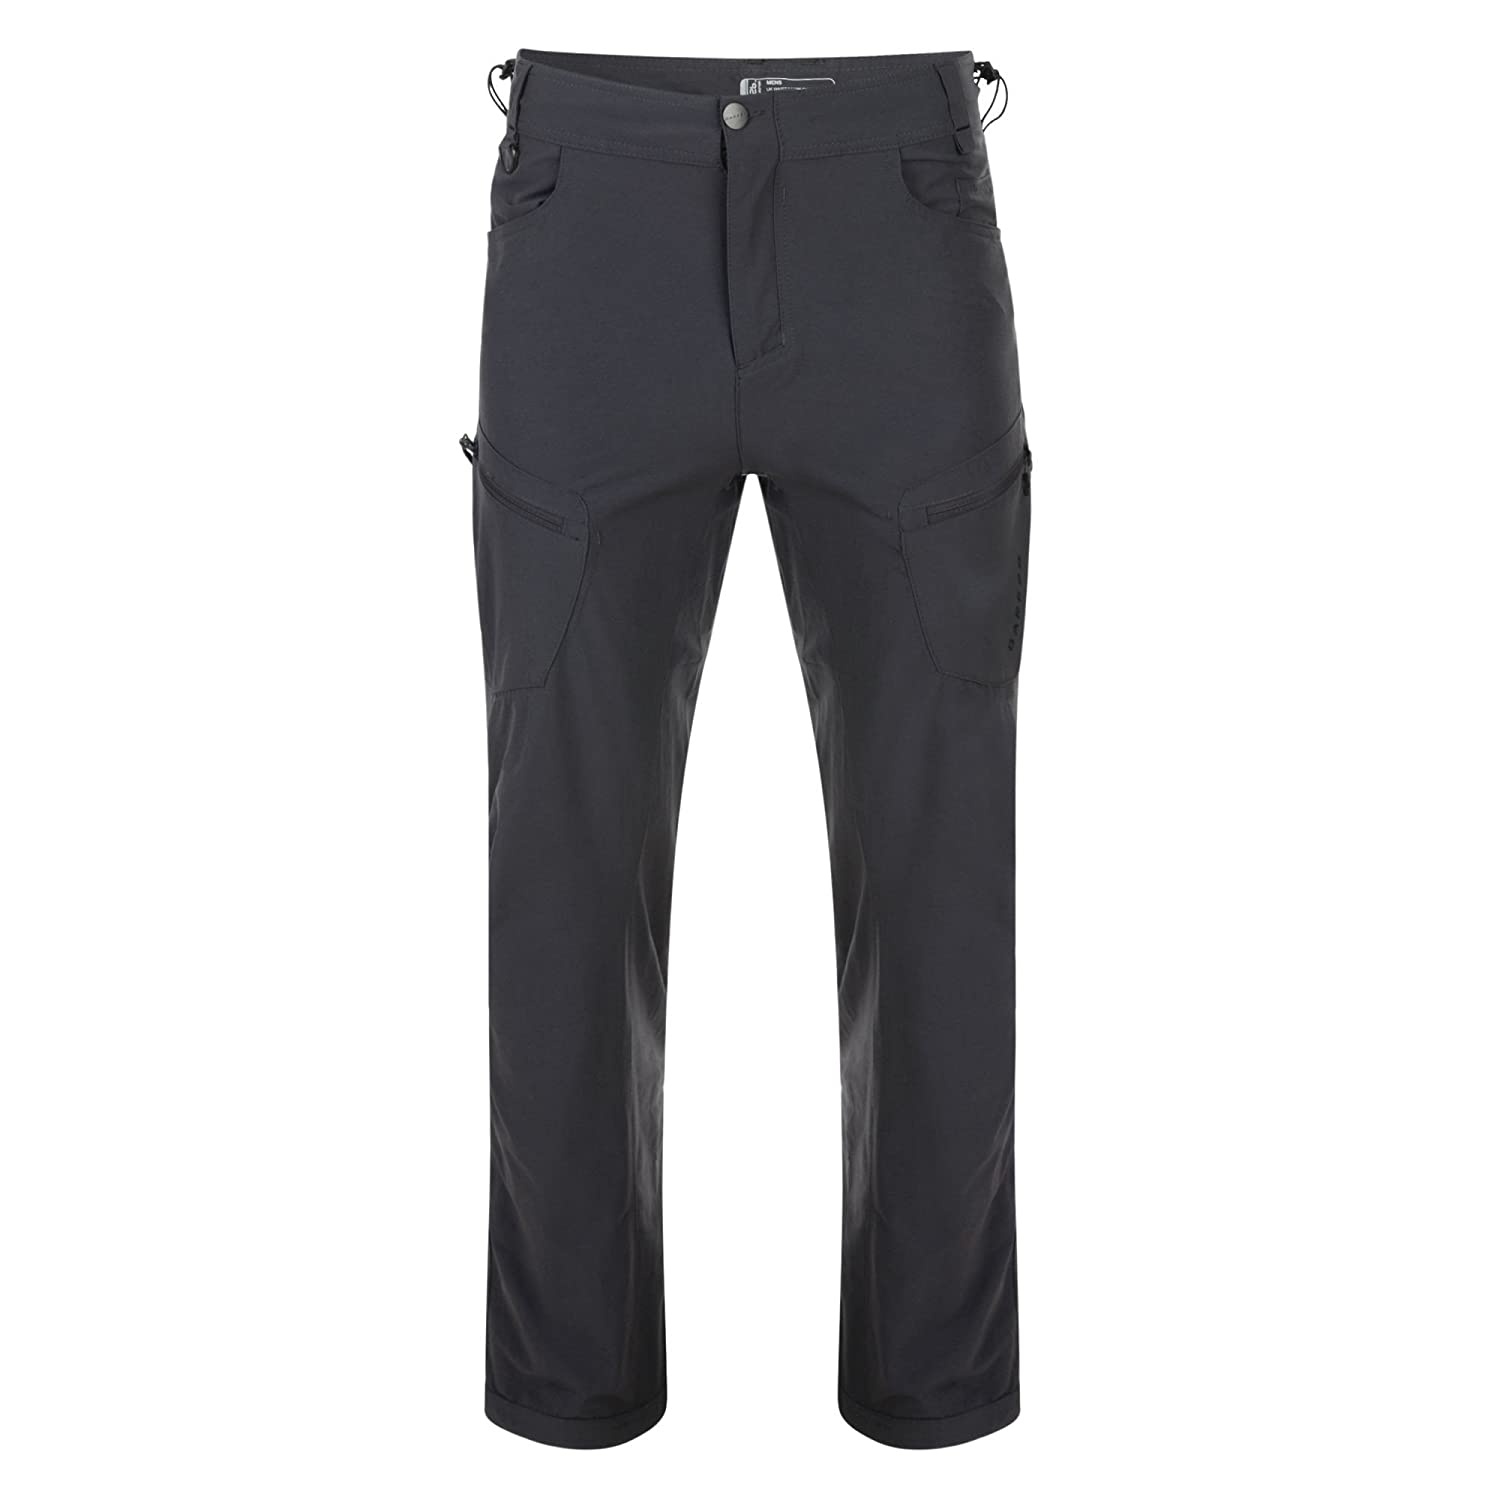 Dare 2b Herren Tuned in Stretch with Water Repellent Finish Hose